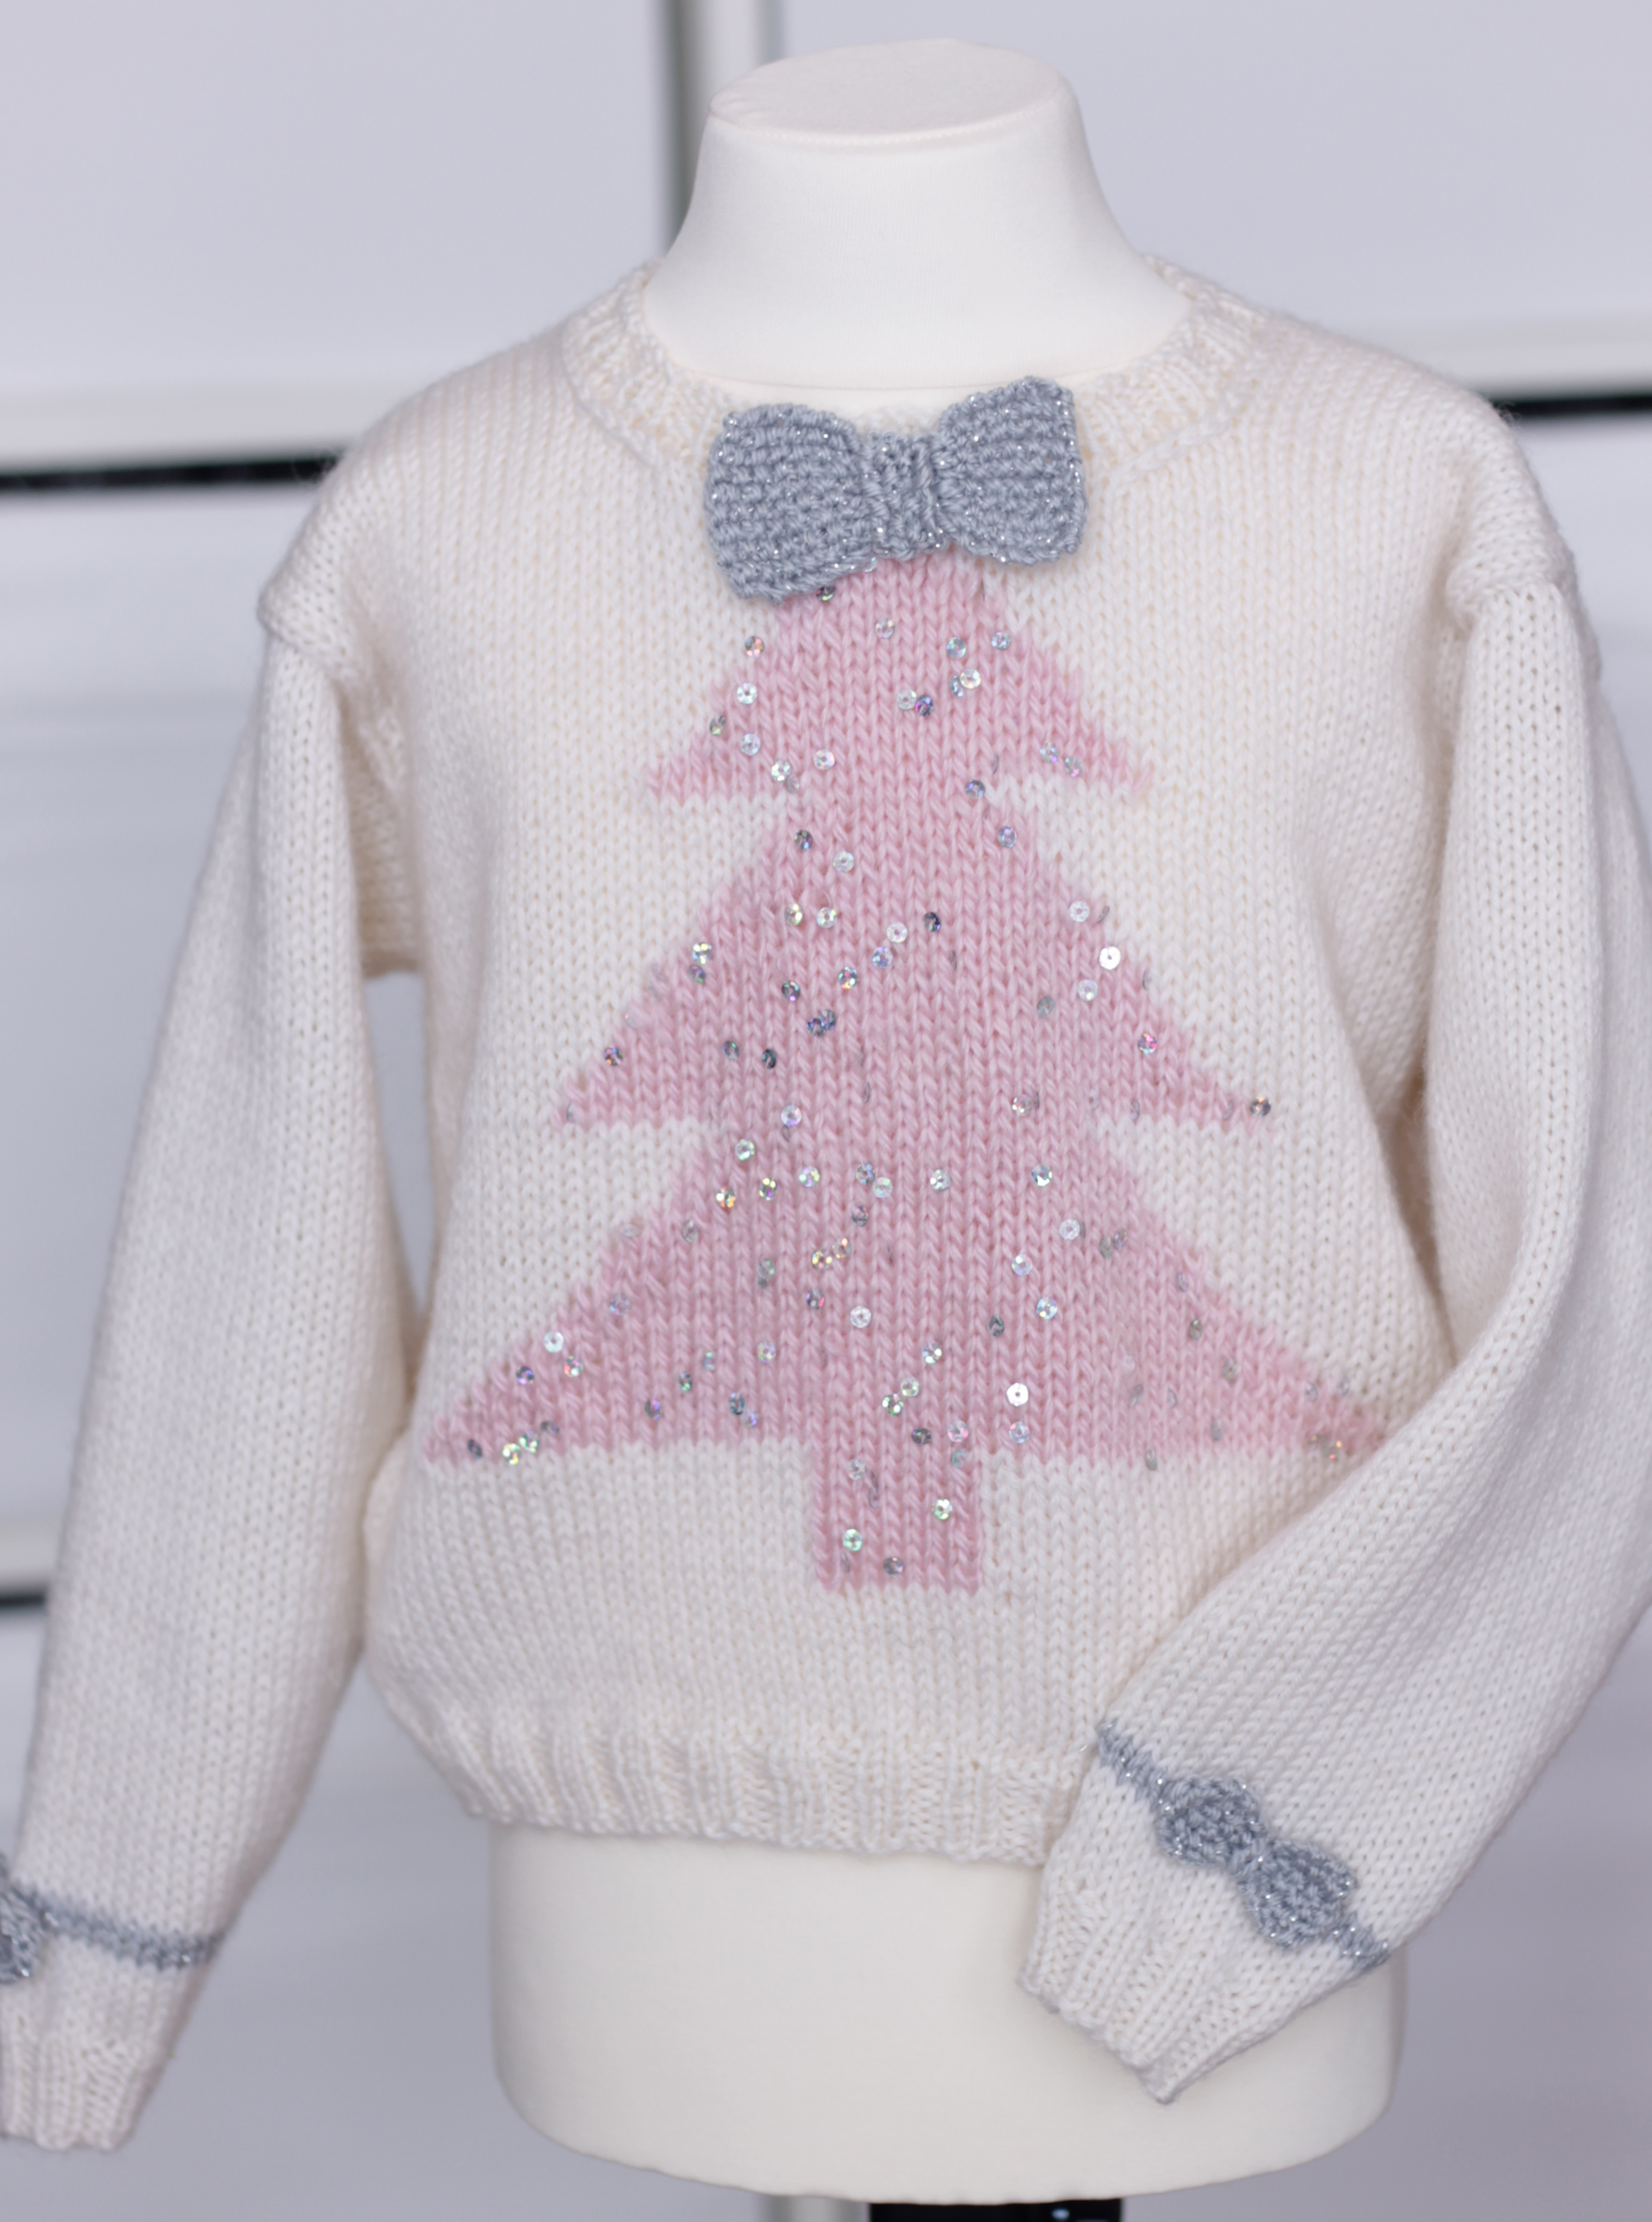 Women's Christmas Jumpers Welcome in the xmas season by wrapping up in everybody's festive favourite: the Christmas jumper. No winter wardrobe is complete without a sprinkling of classic fair isle and, of course, a novelty knit to channel your inner child.